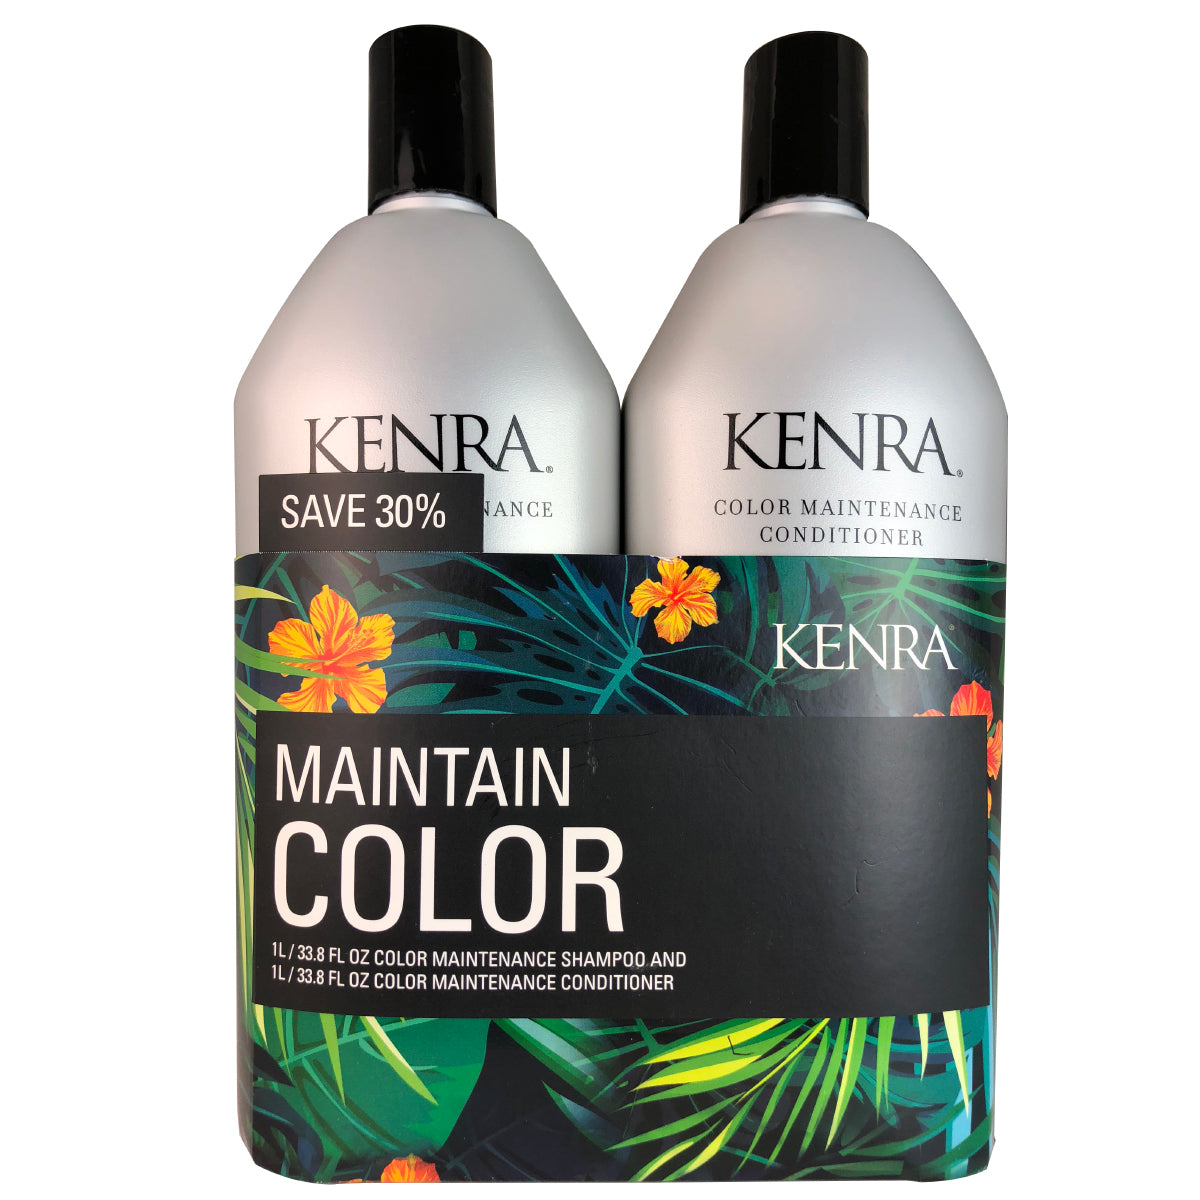 Kenra Color Maintenance Hair Shampoo And Conditioner Duo 33.8 oz Each